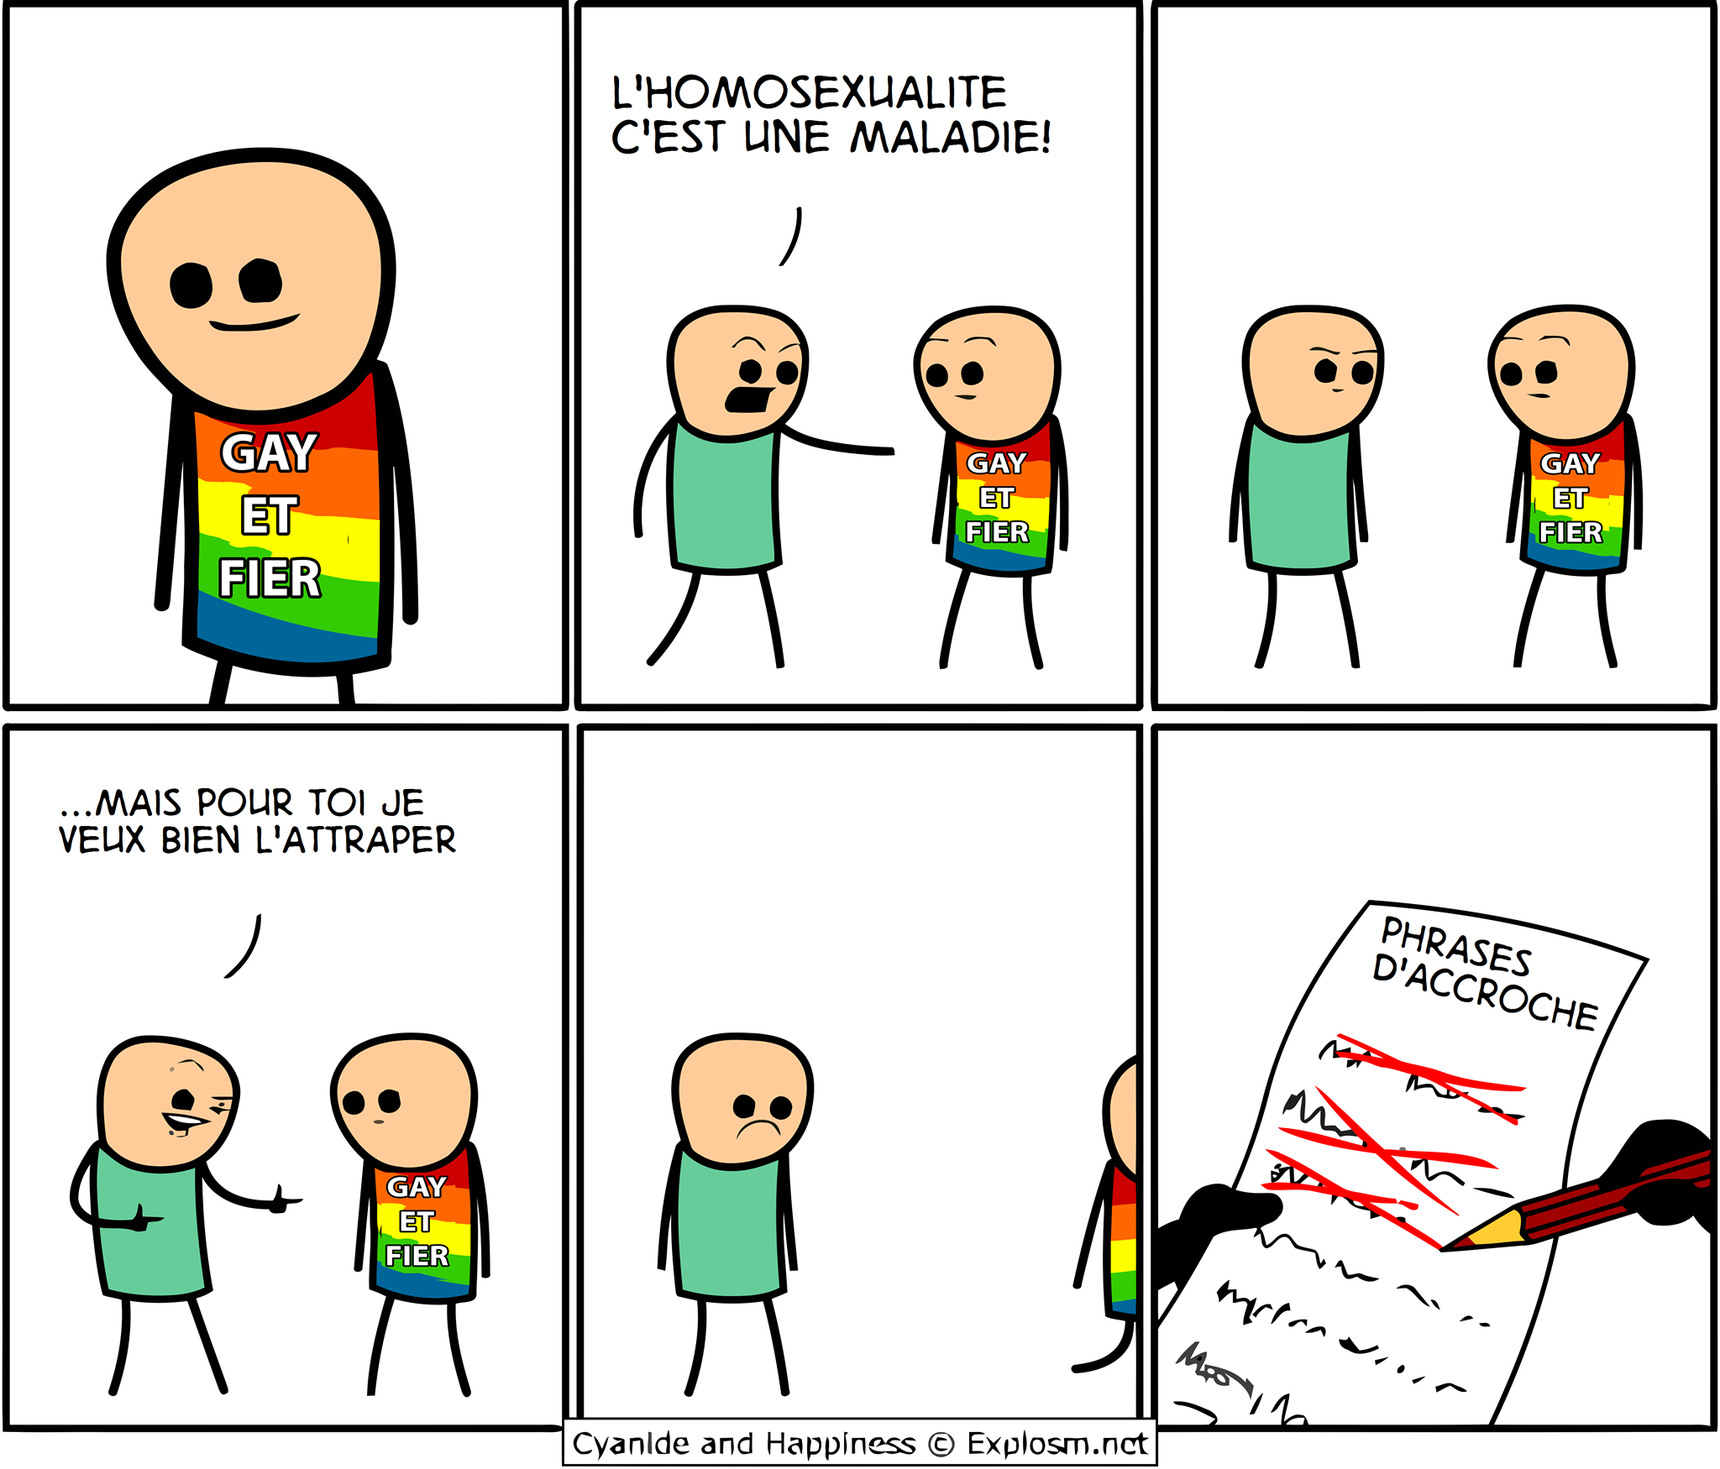 Cyanide and Hapiness